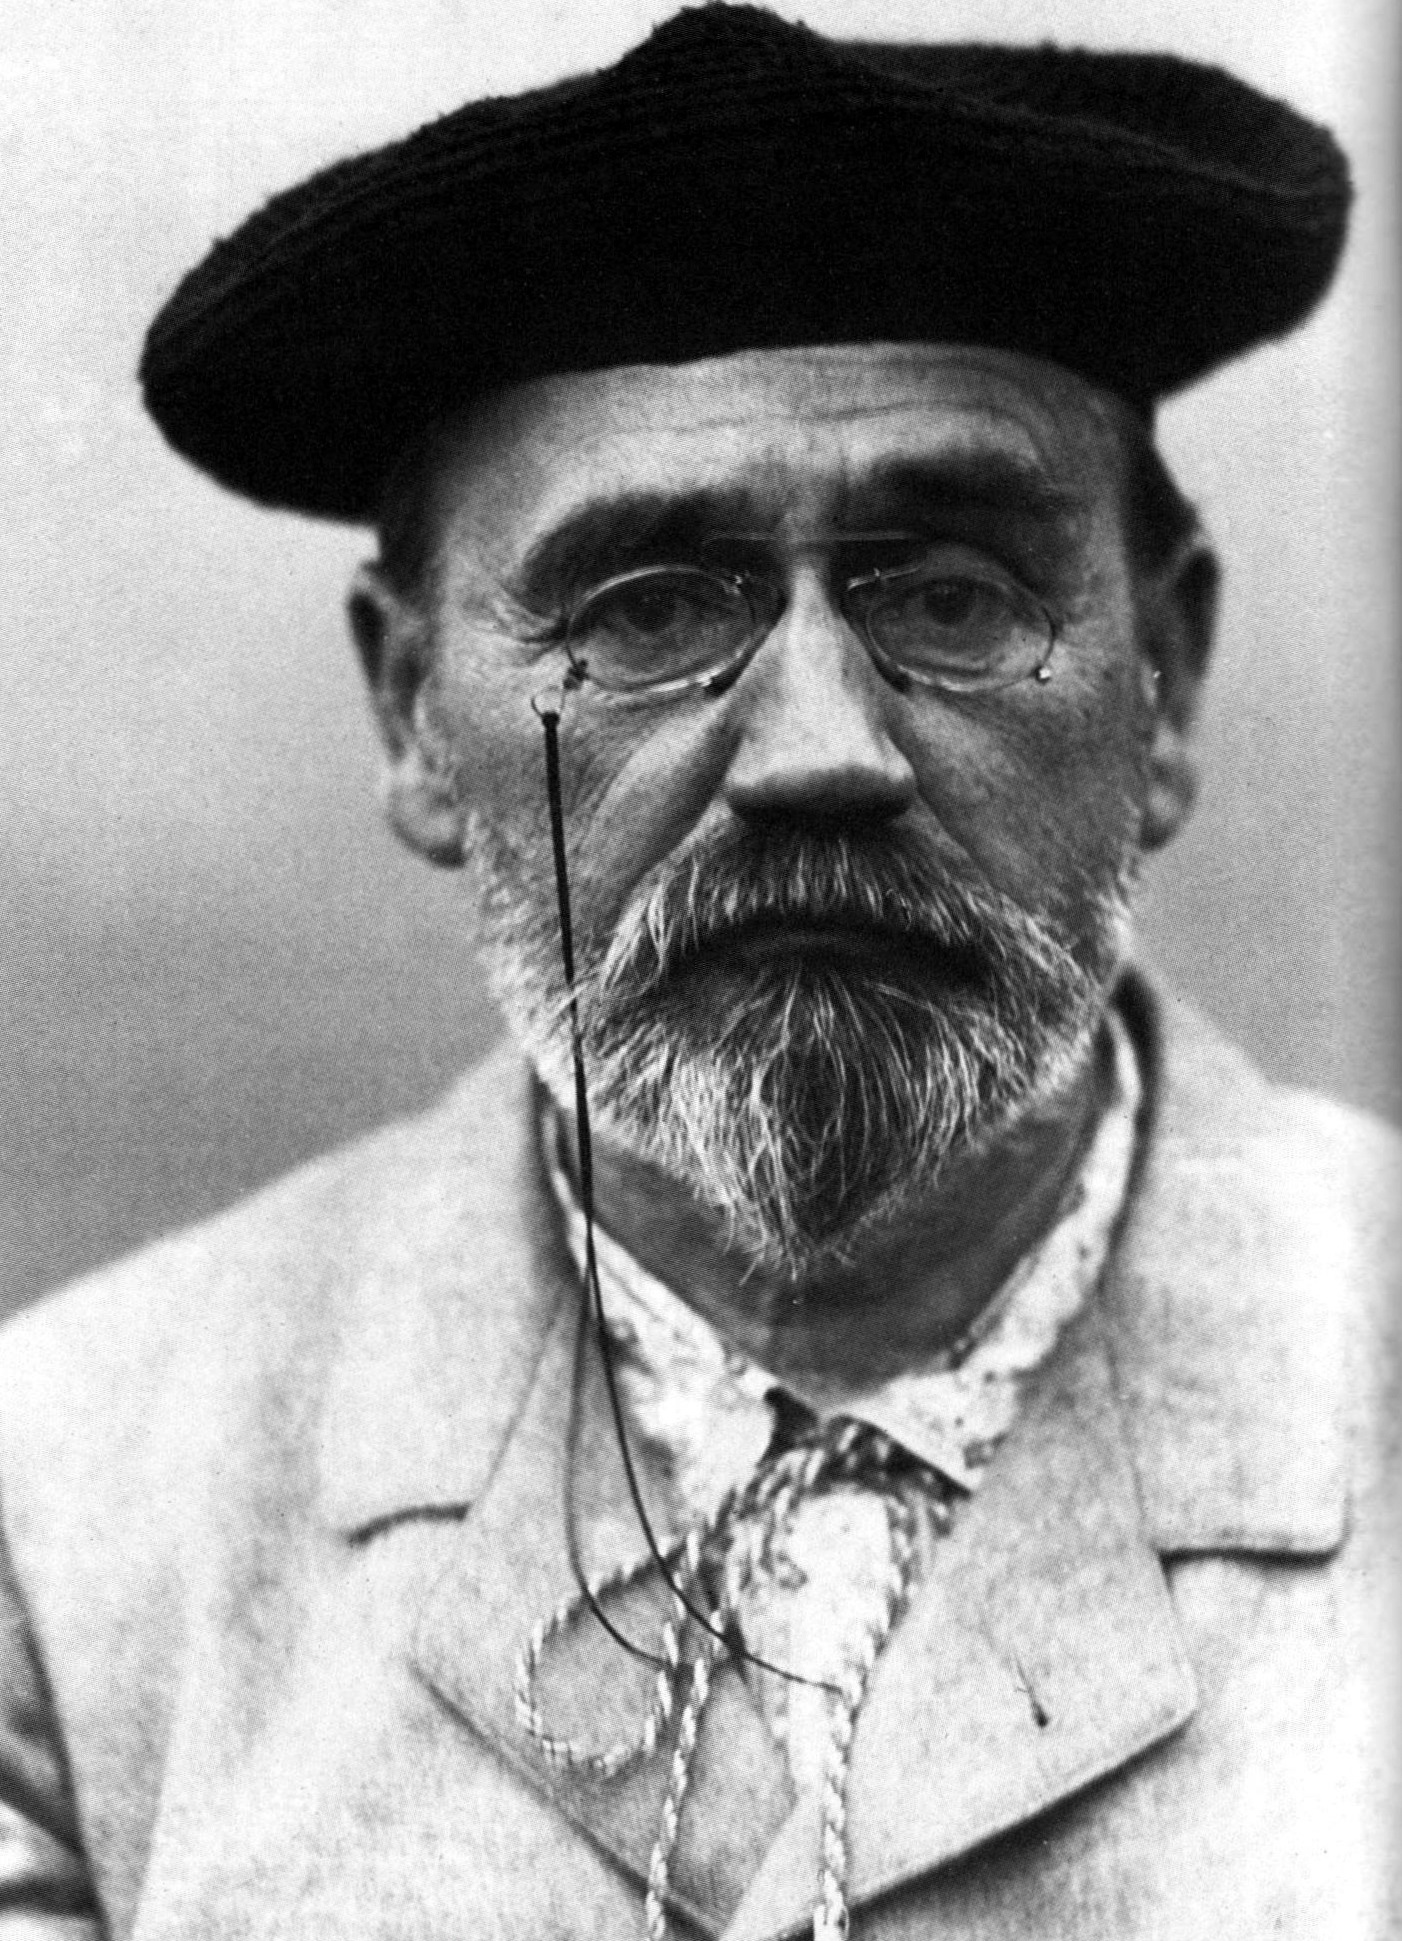 Image of Émile Zola from Wikidata